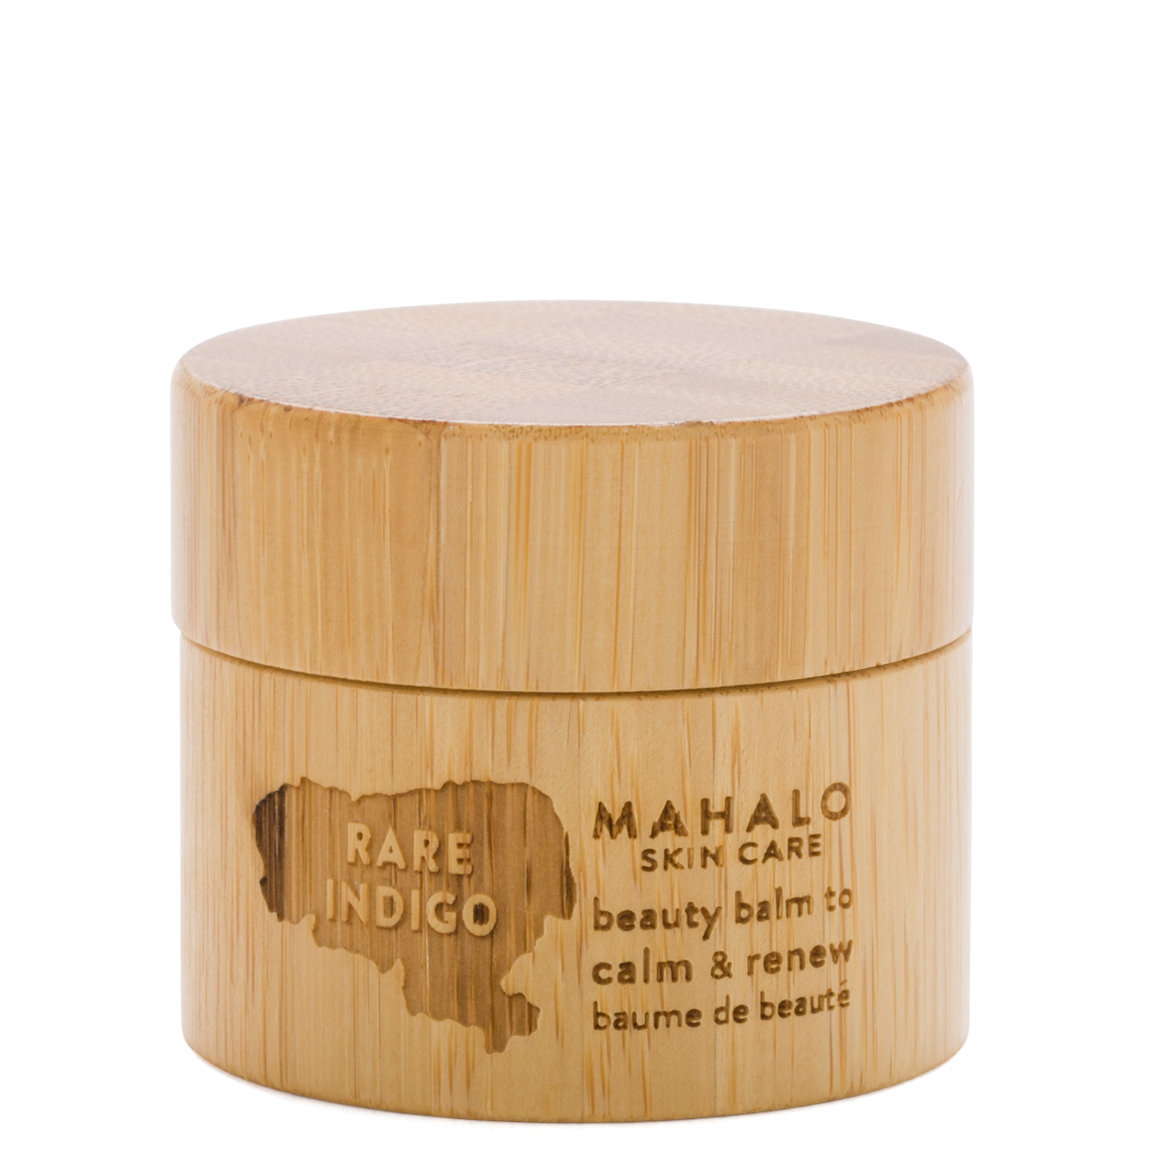 MAHALO Skin Care The RARE INDIGO Beauty Balm